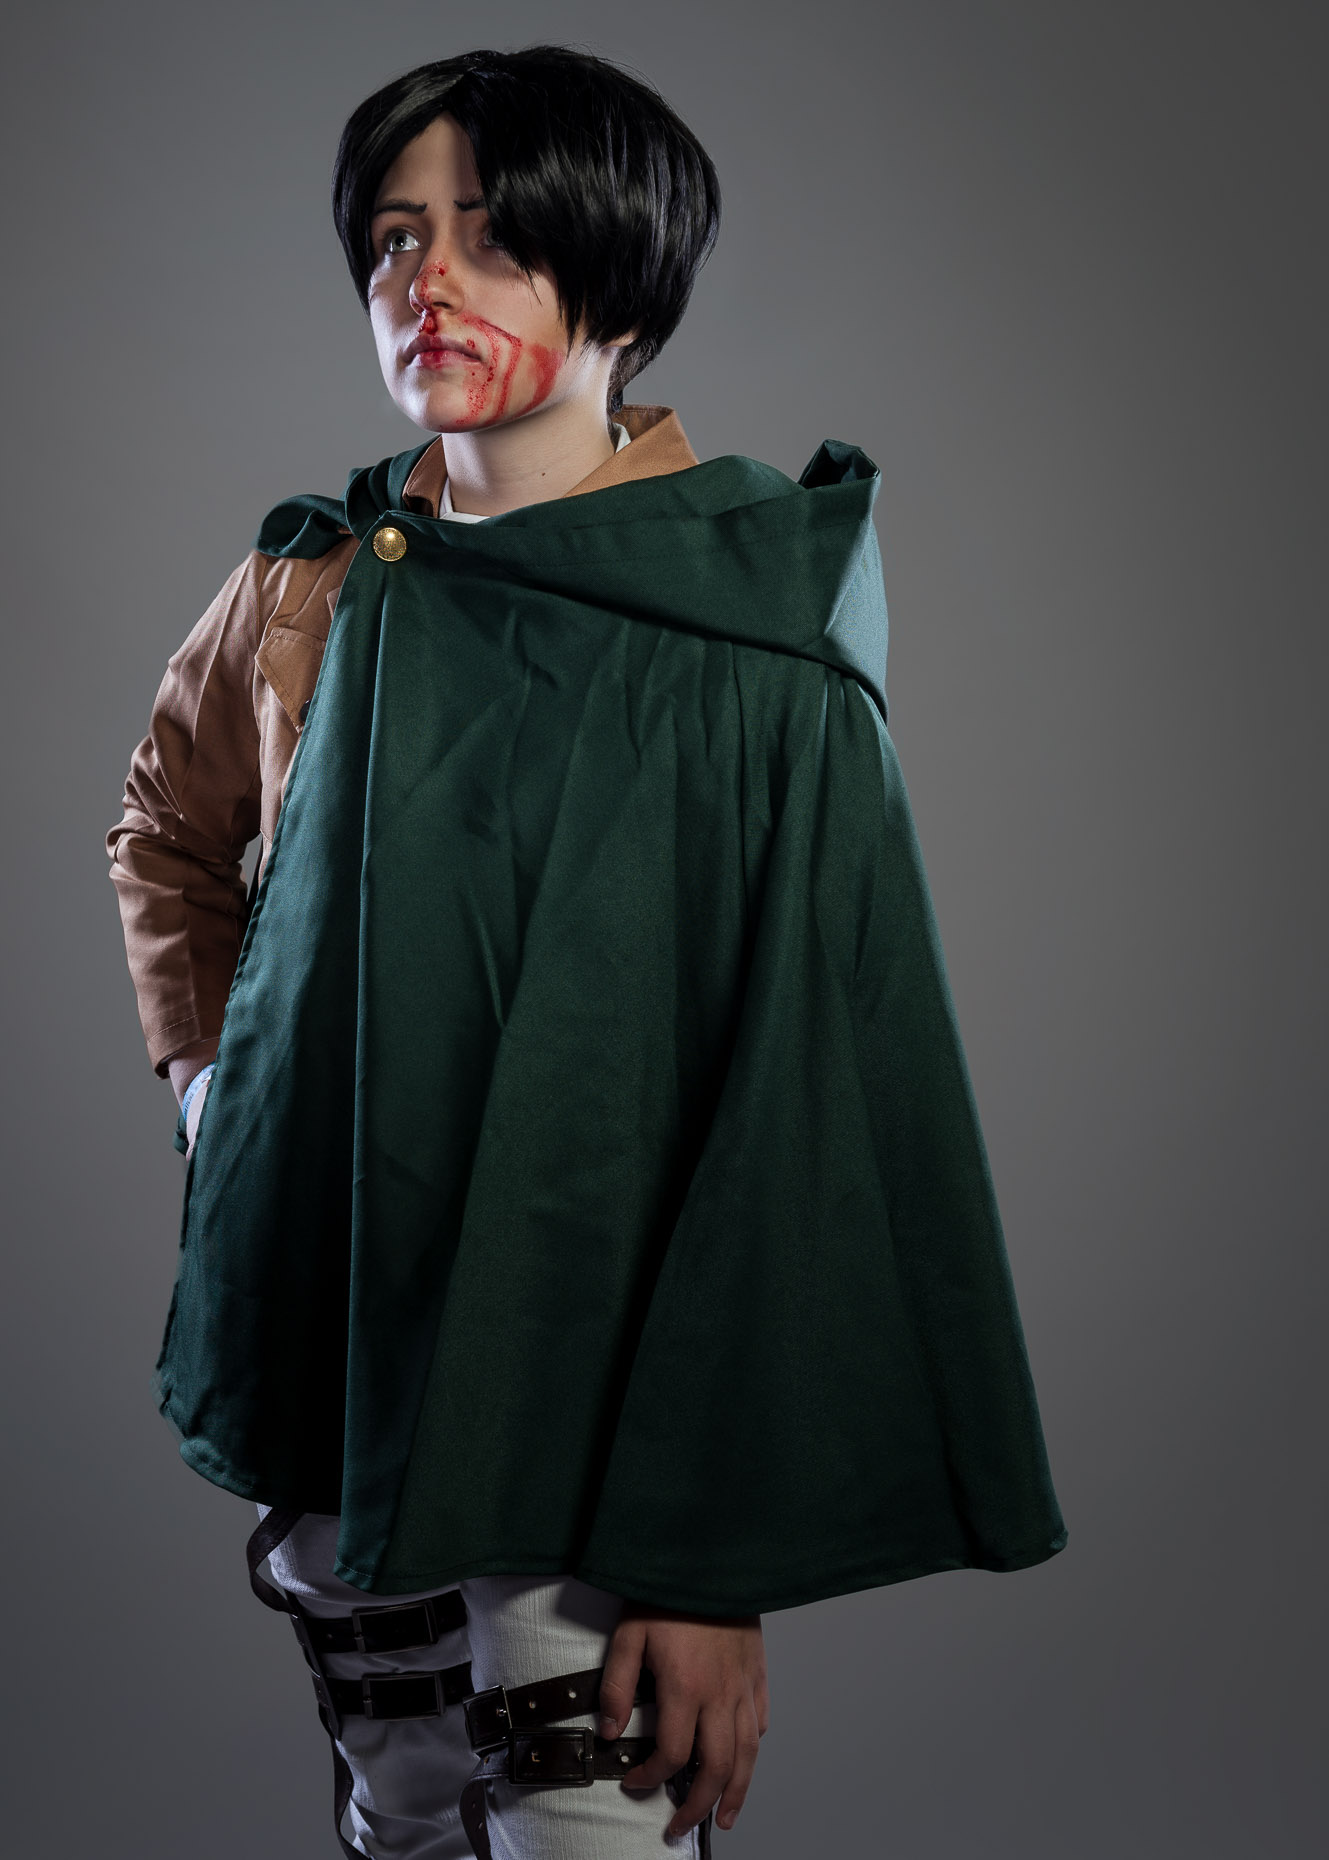 Attack on Titan Levi Cosplay Portrait